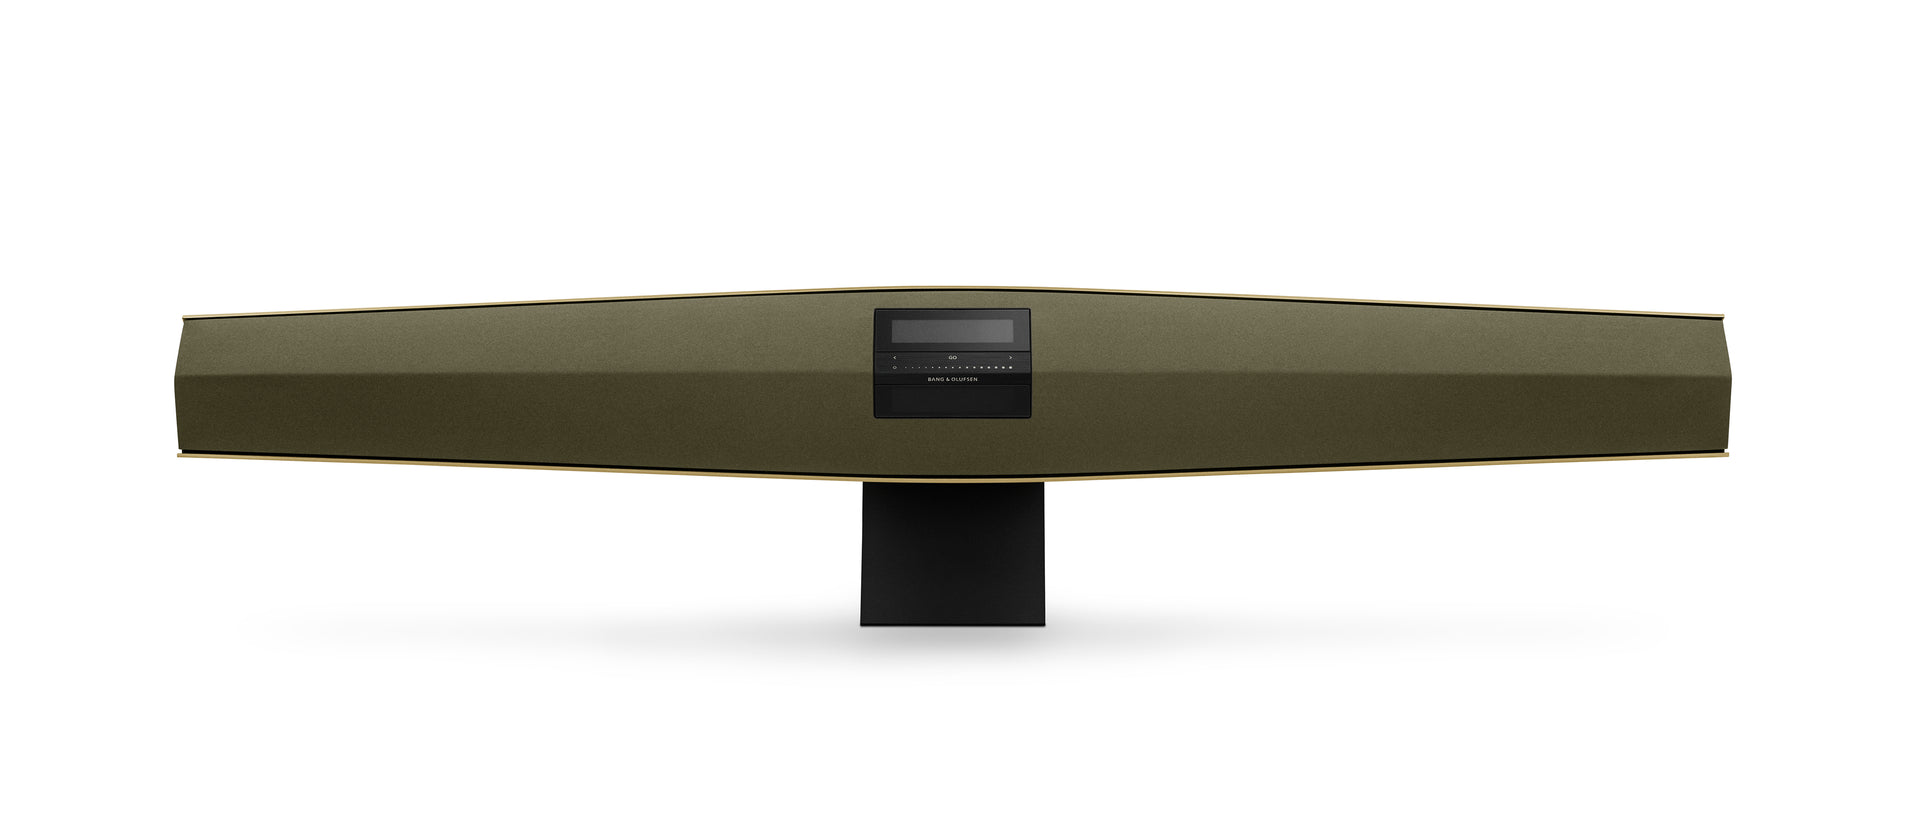 Beosound 35 - High-end wireless speaker and all-in-one multiroom music system